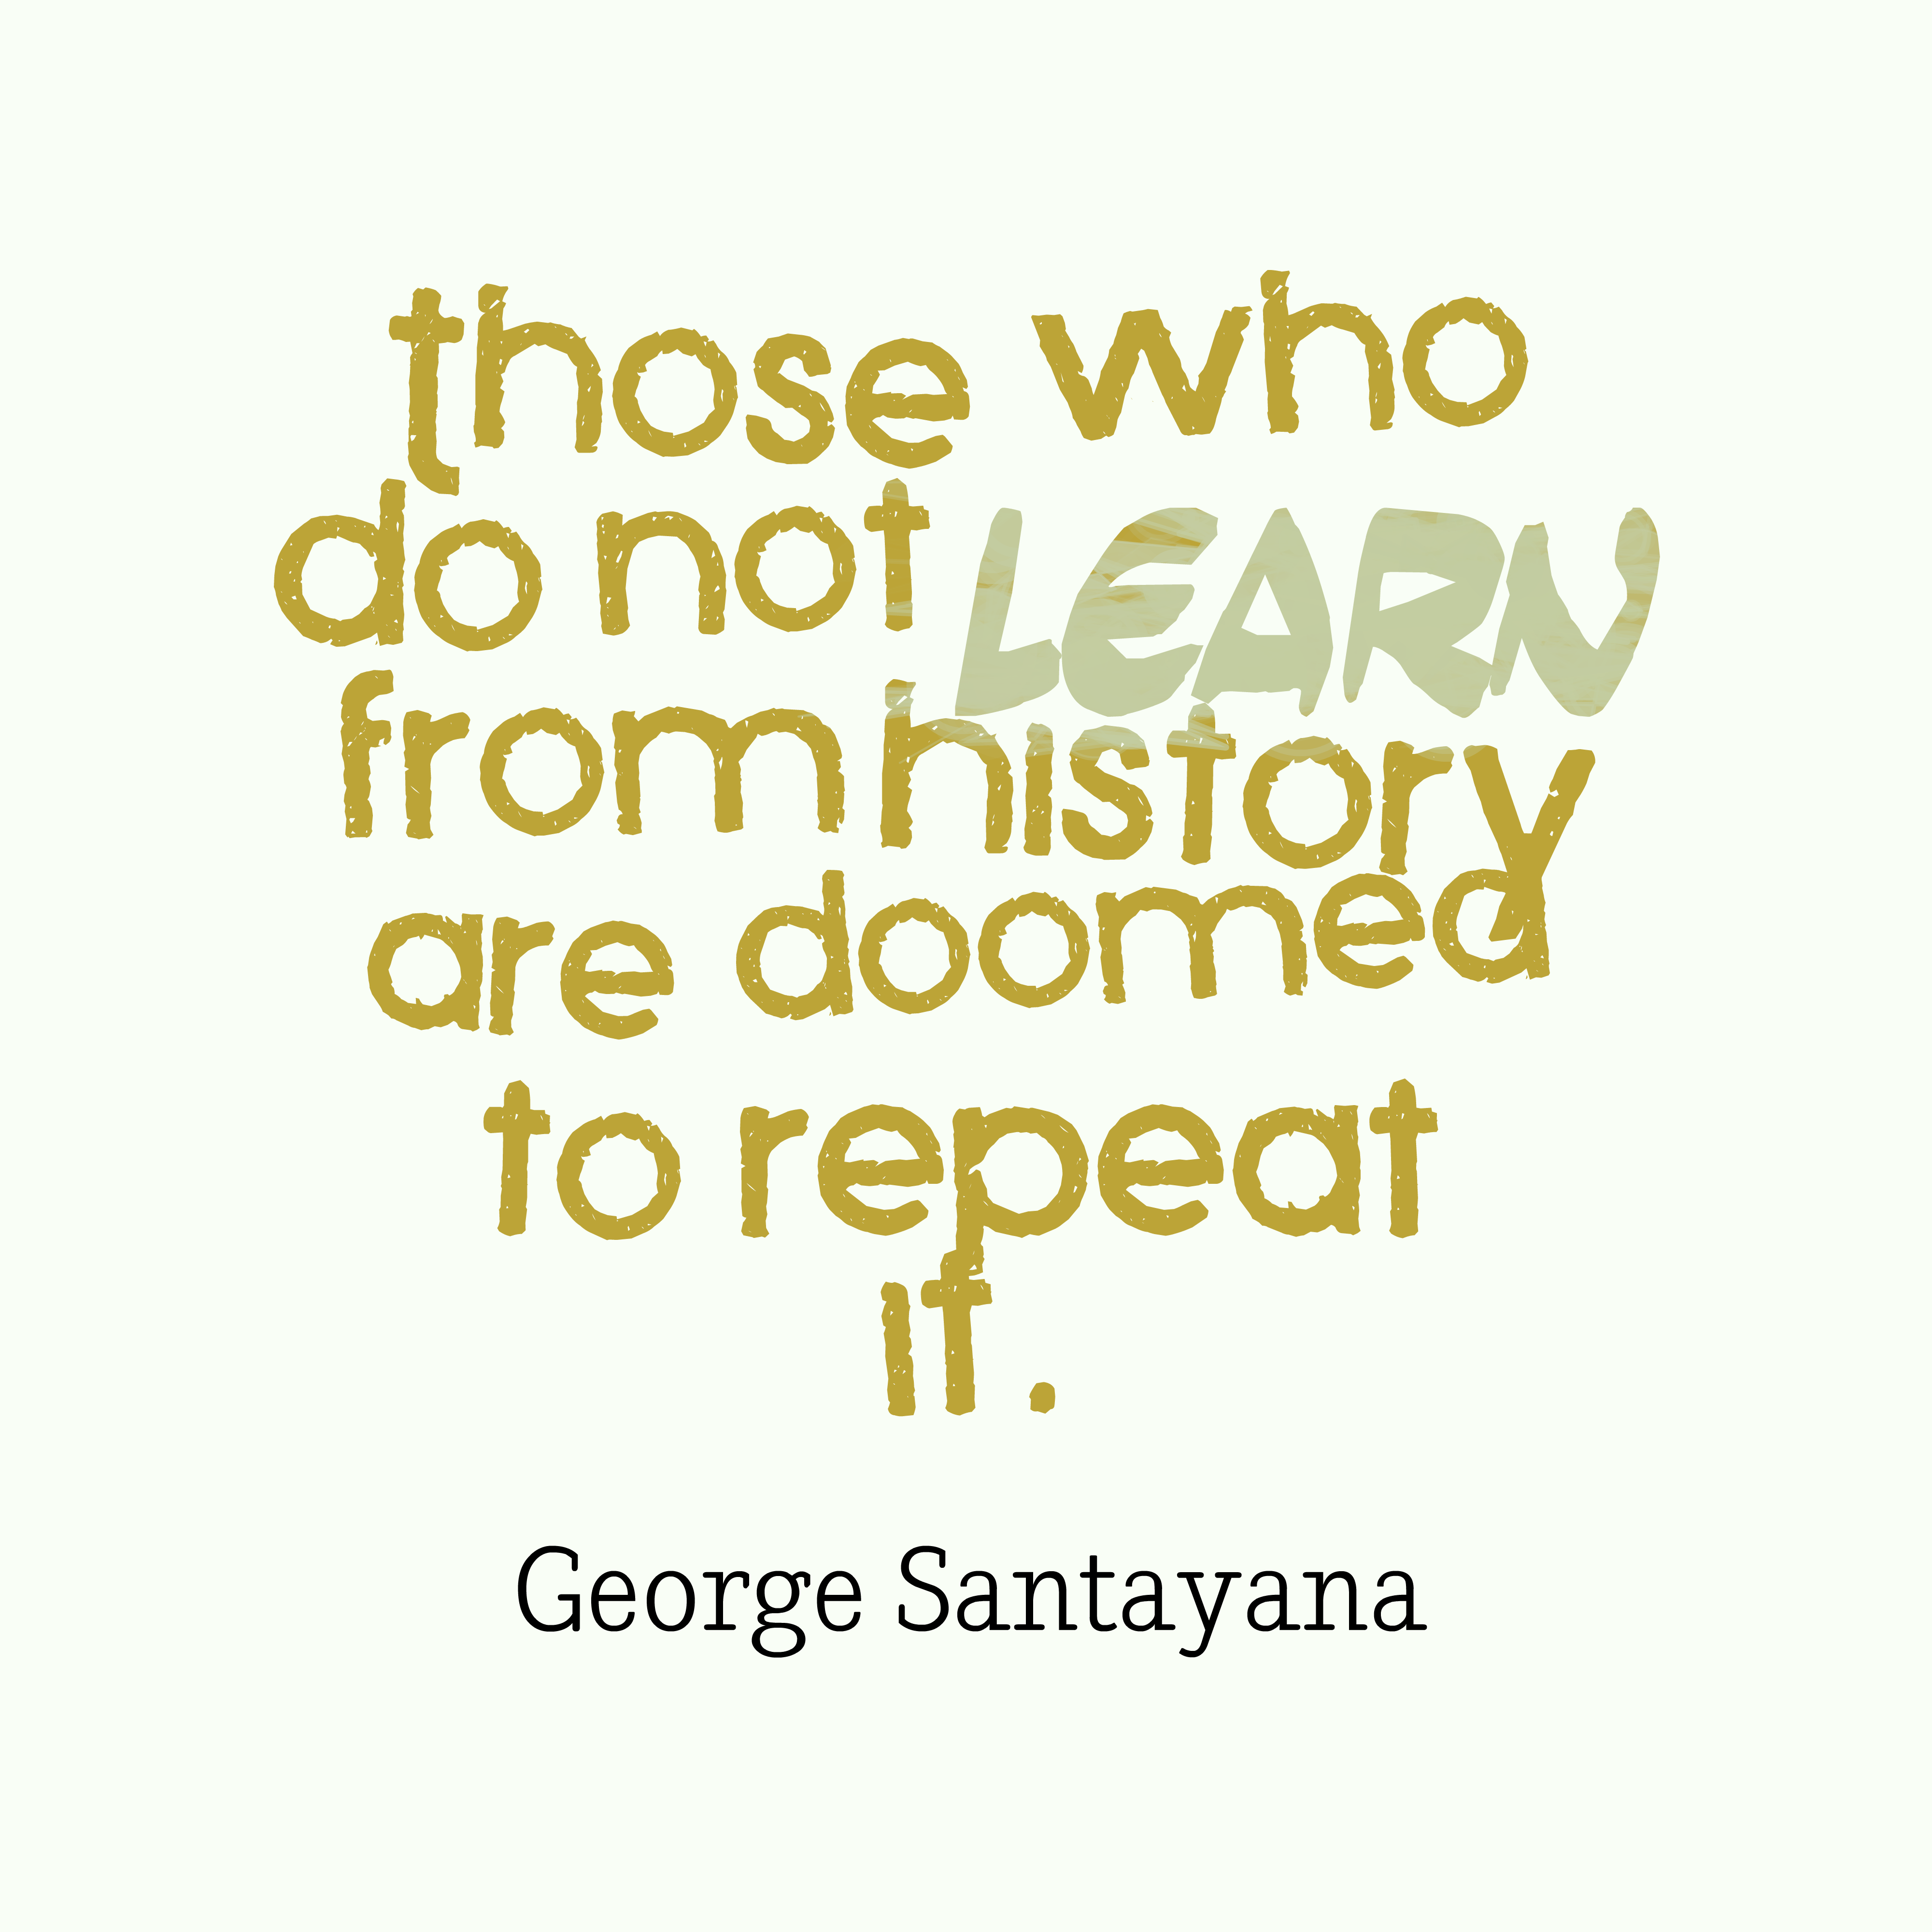 Quotes image of Those who do not learn from history are doomed to repeat it.